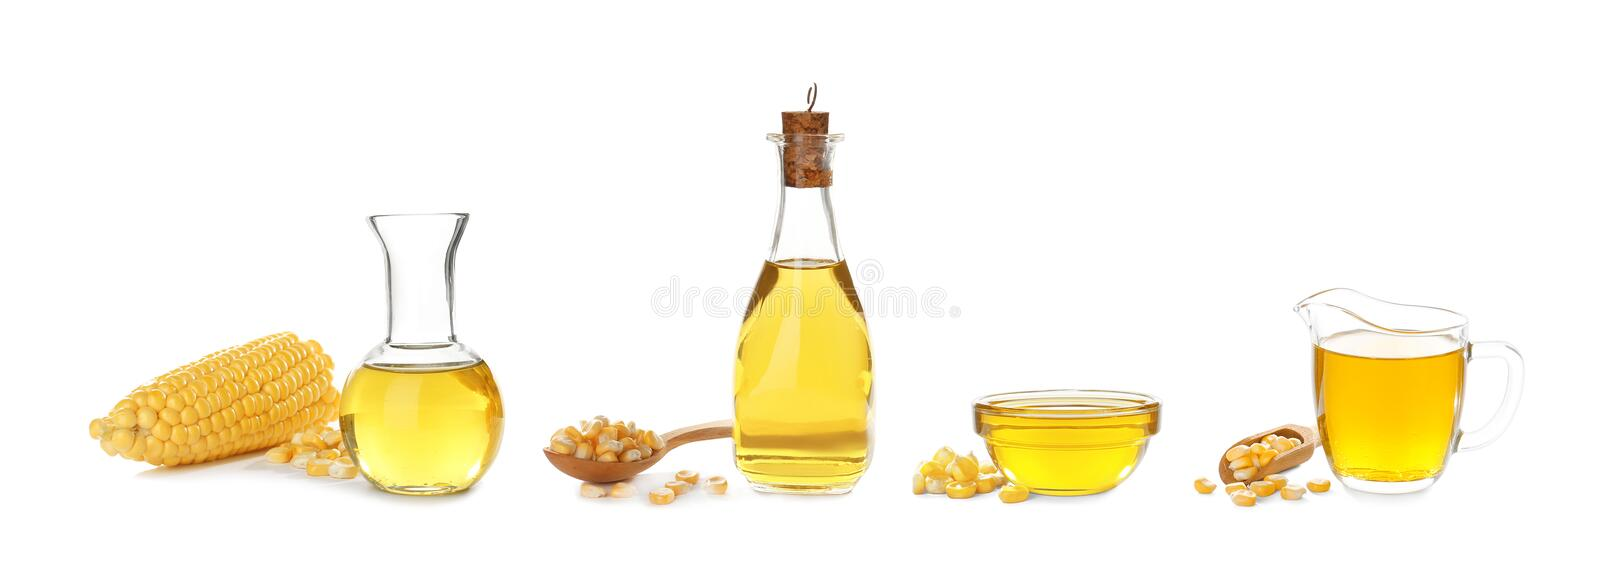 Set with fresh corn oil. On white background royalty free stock image